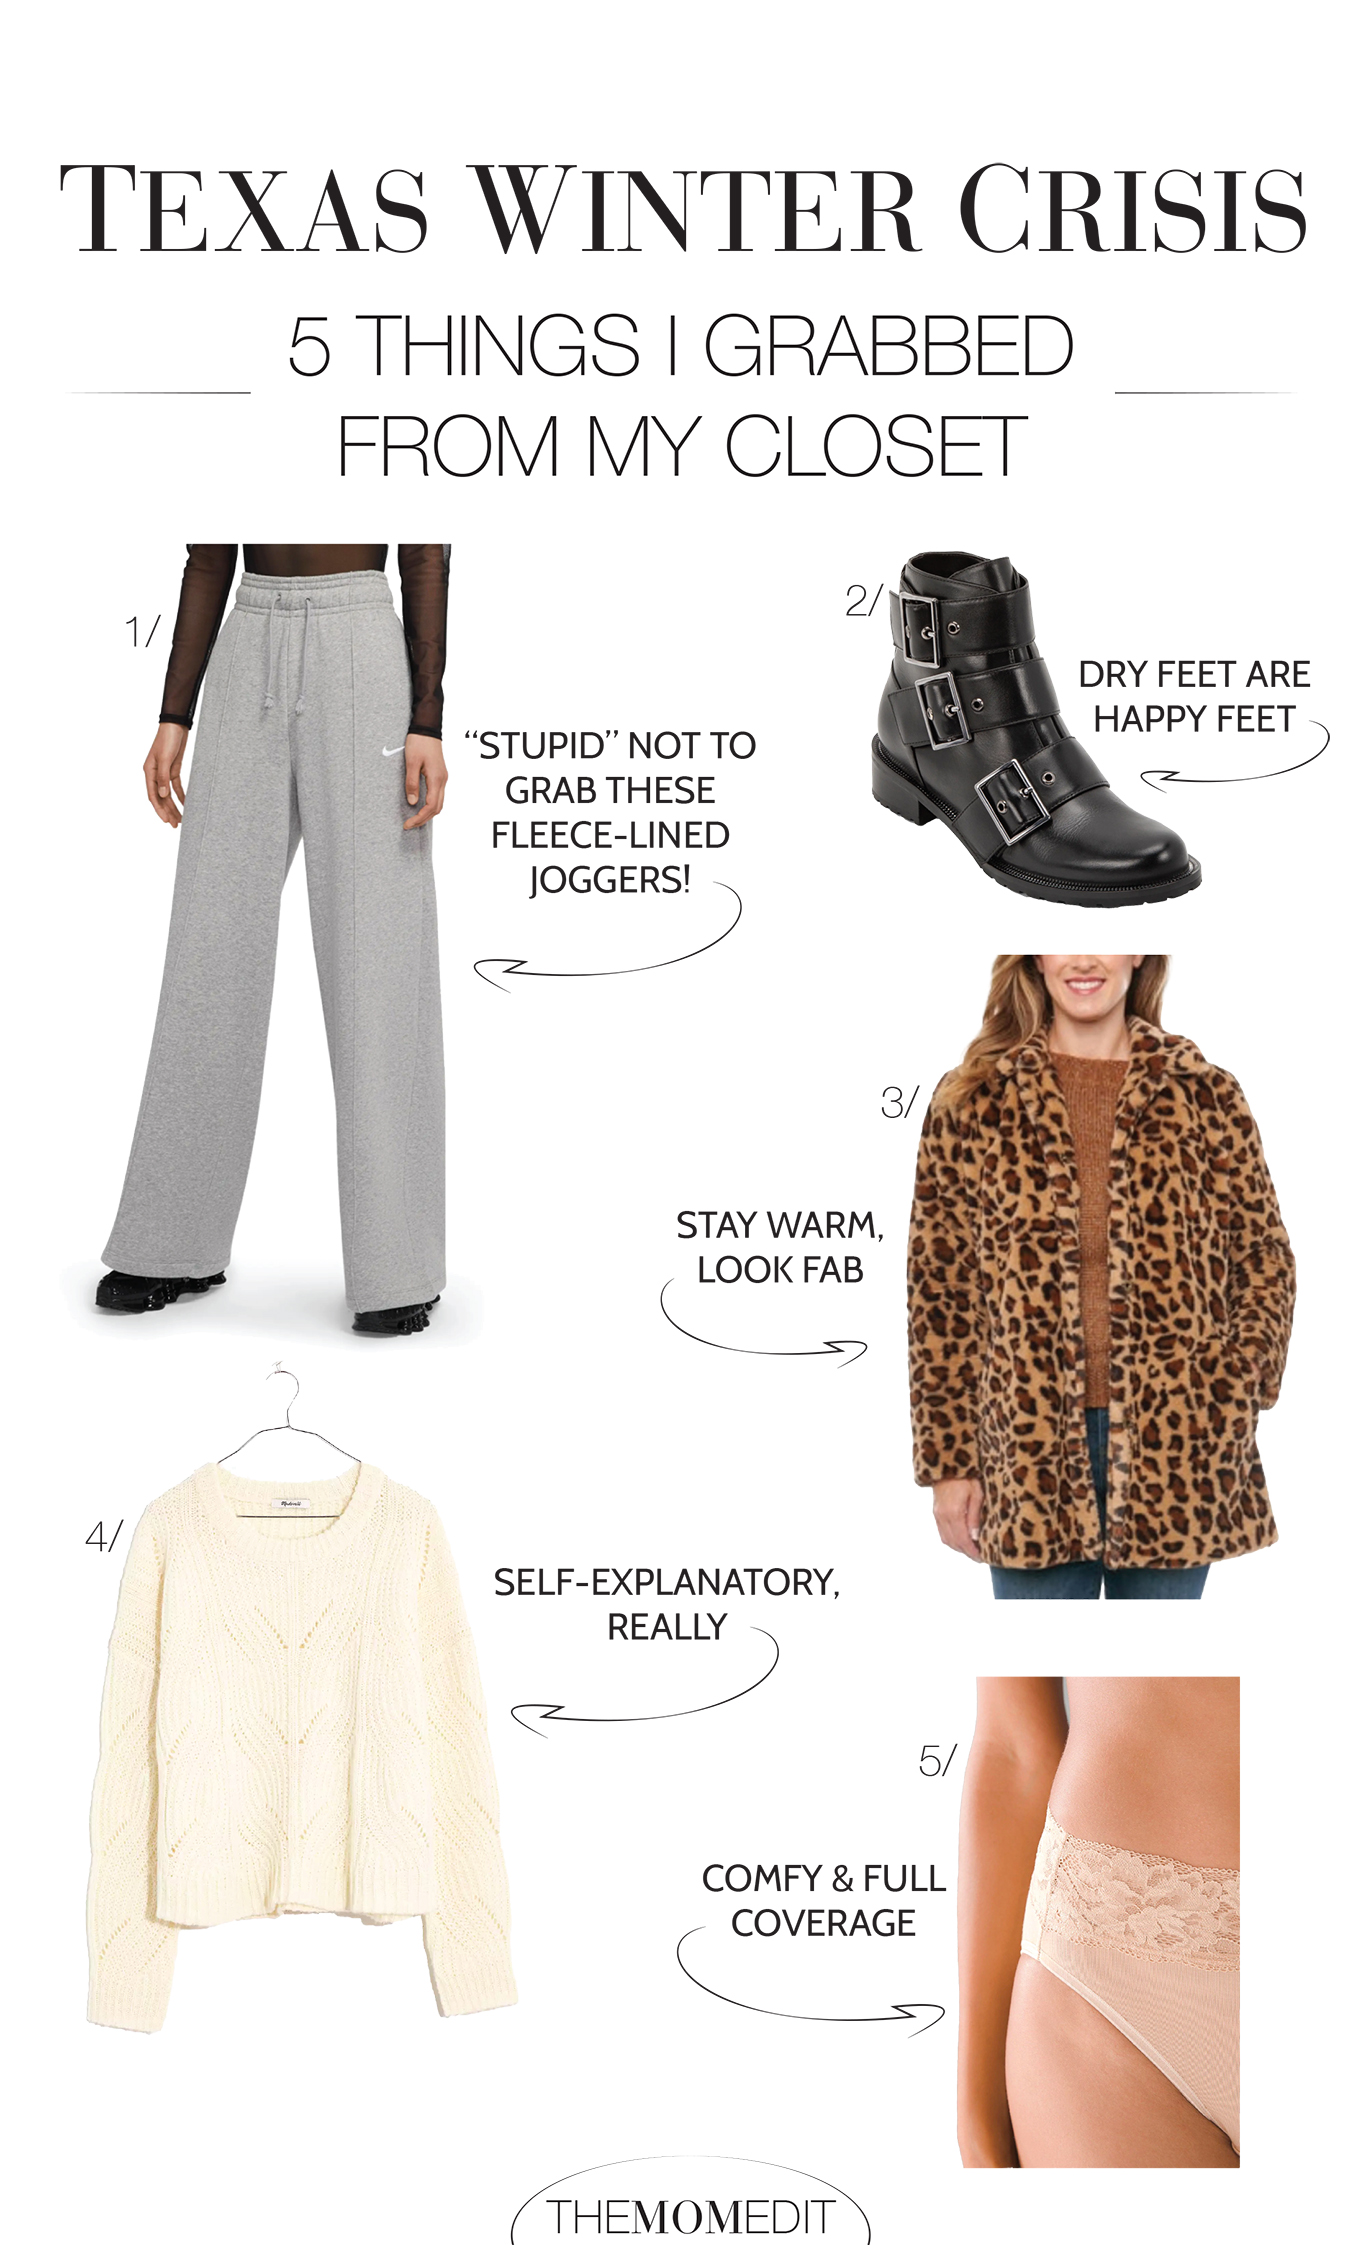 You haven't lived until you've raided a closet in a powerless, flooded home..shivering in a faux fur leopard coat & grabbing as much as possible by the light of a dying iPhone.